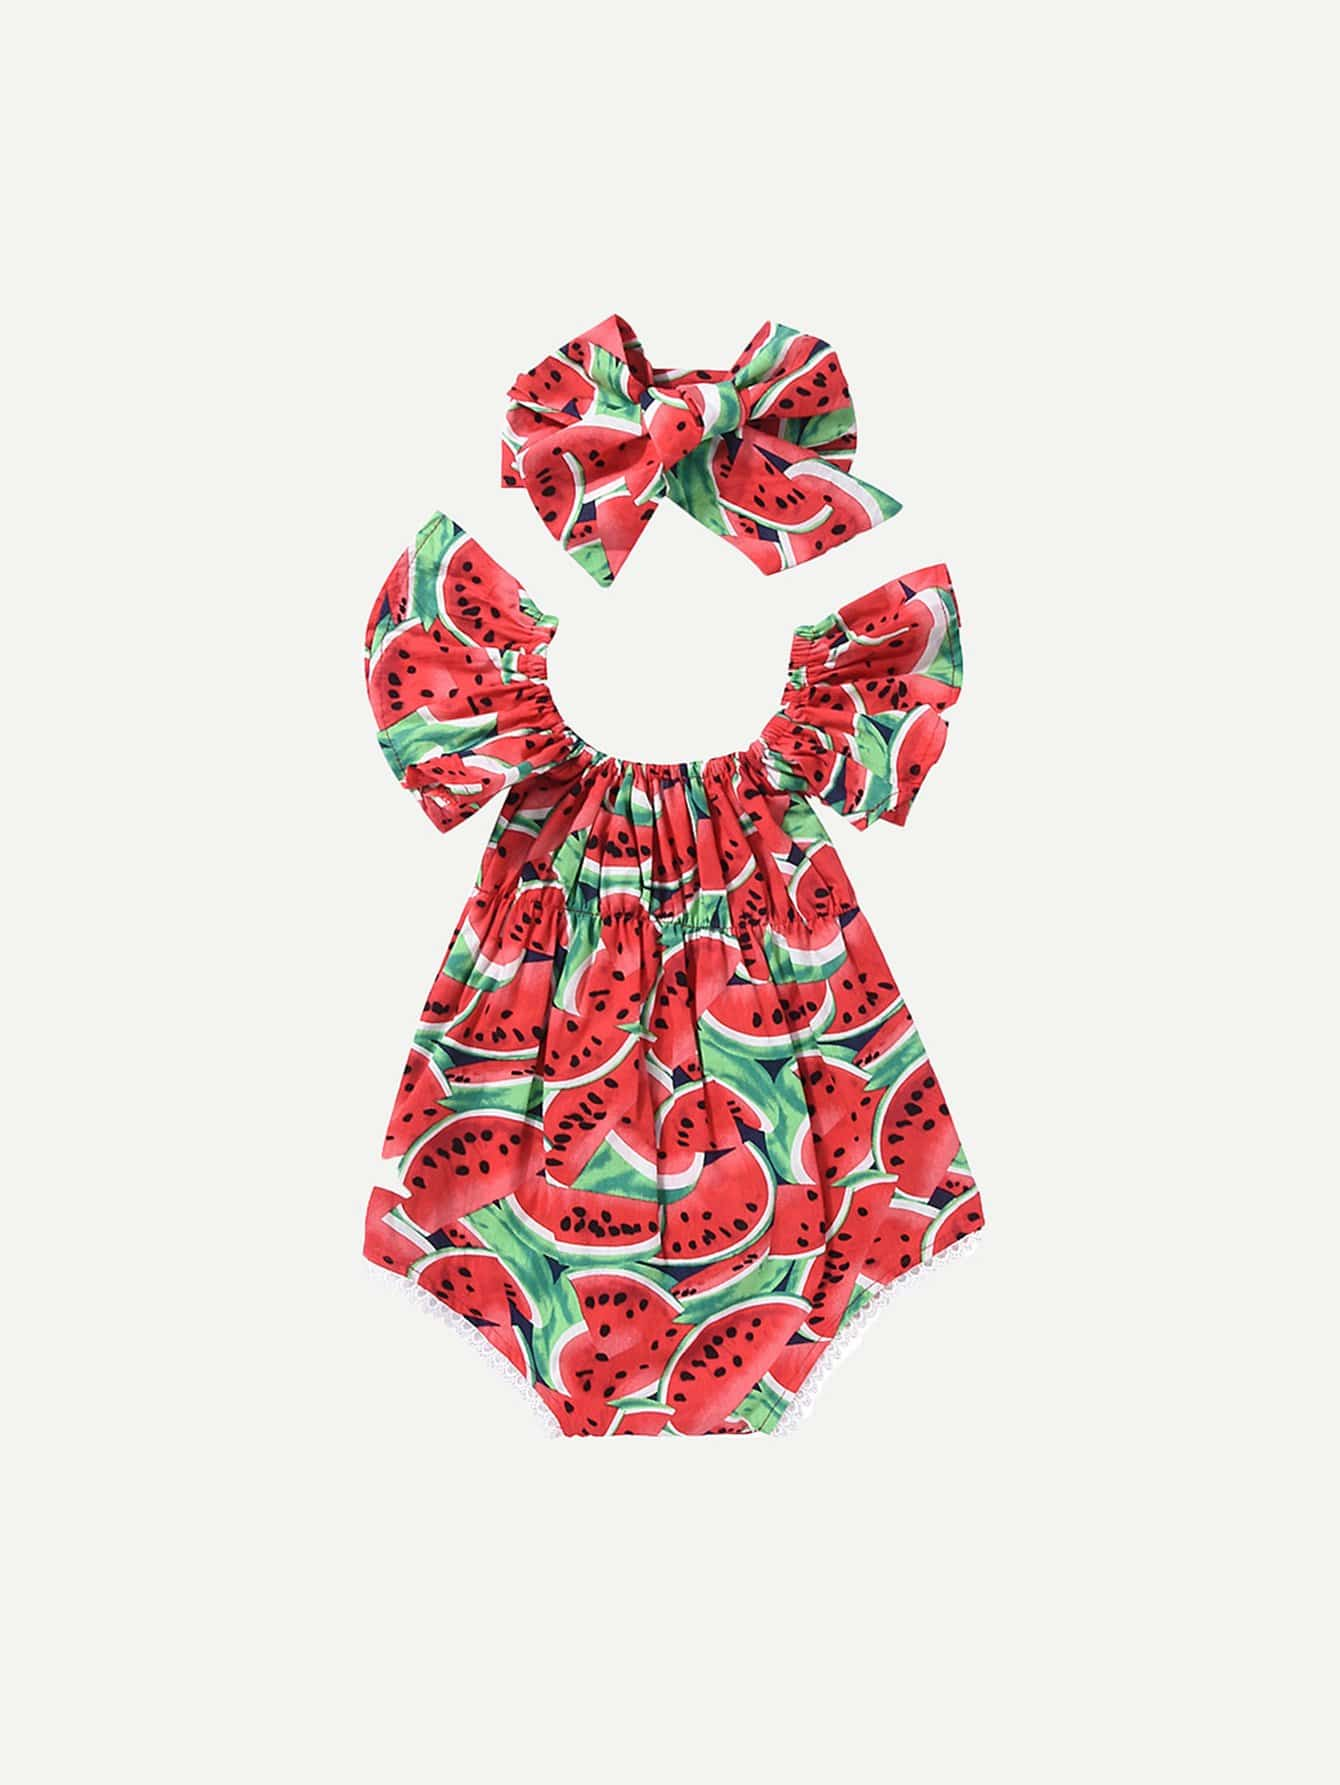 Toddler Girls Watermelon Print Romper With Headband null